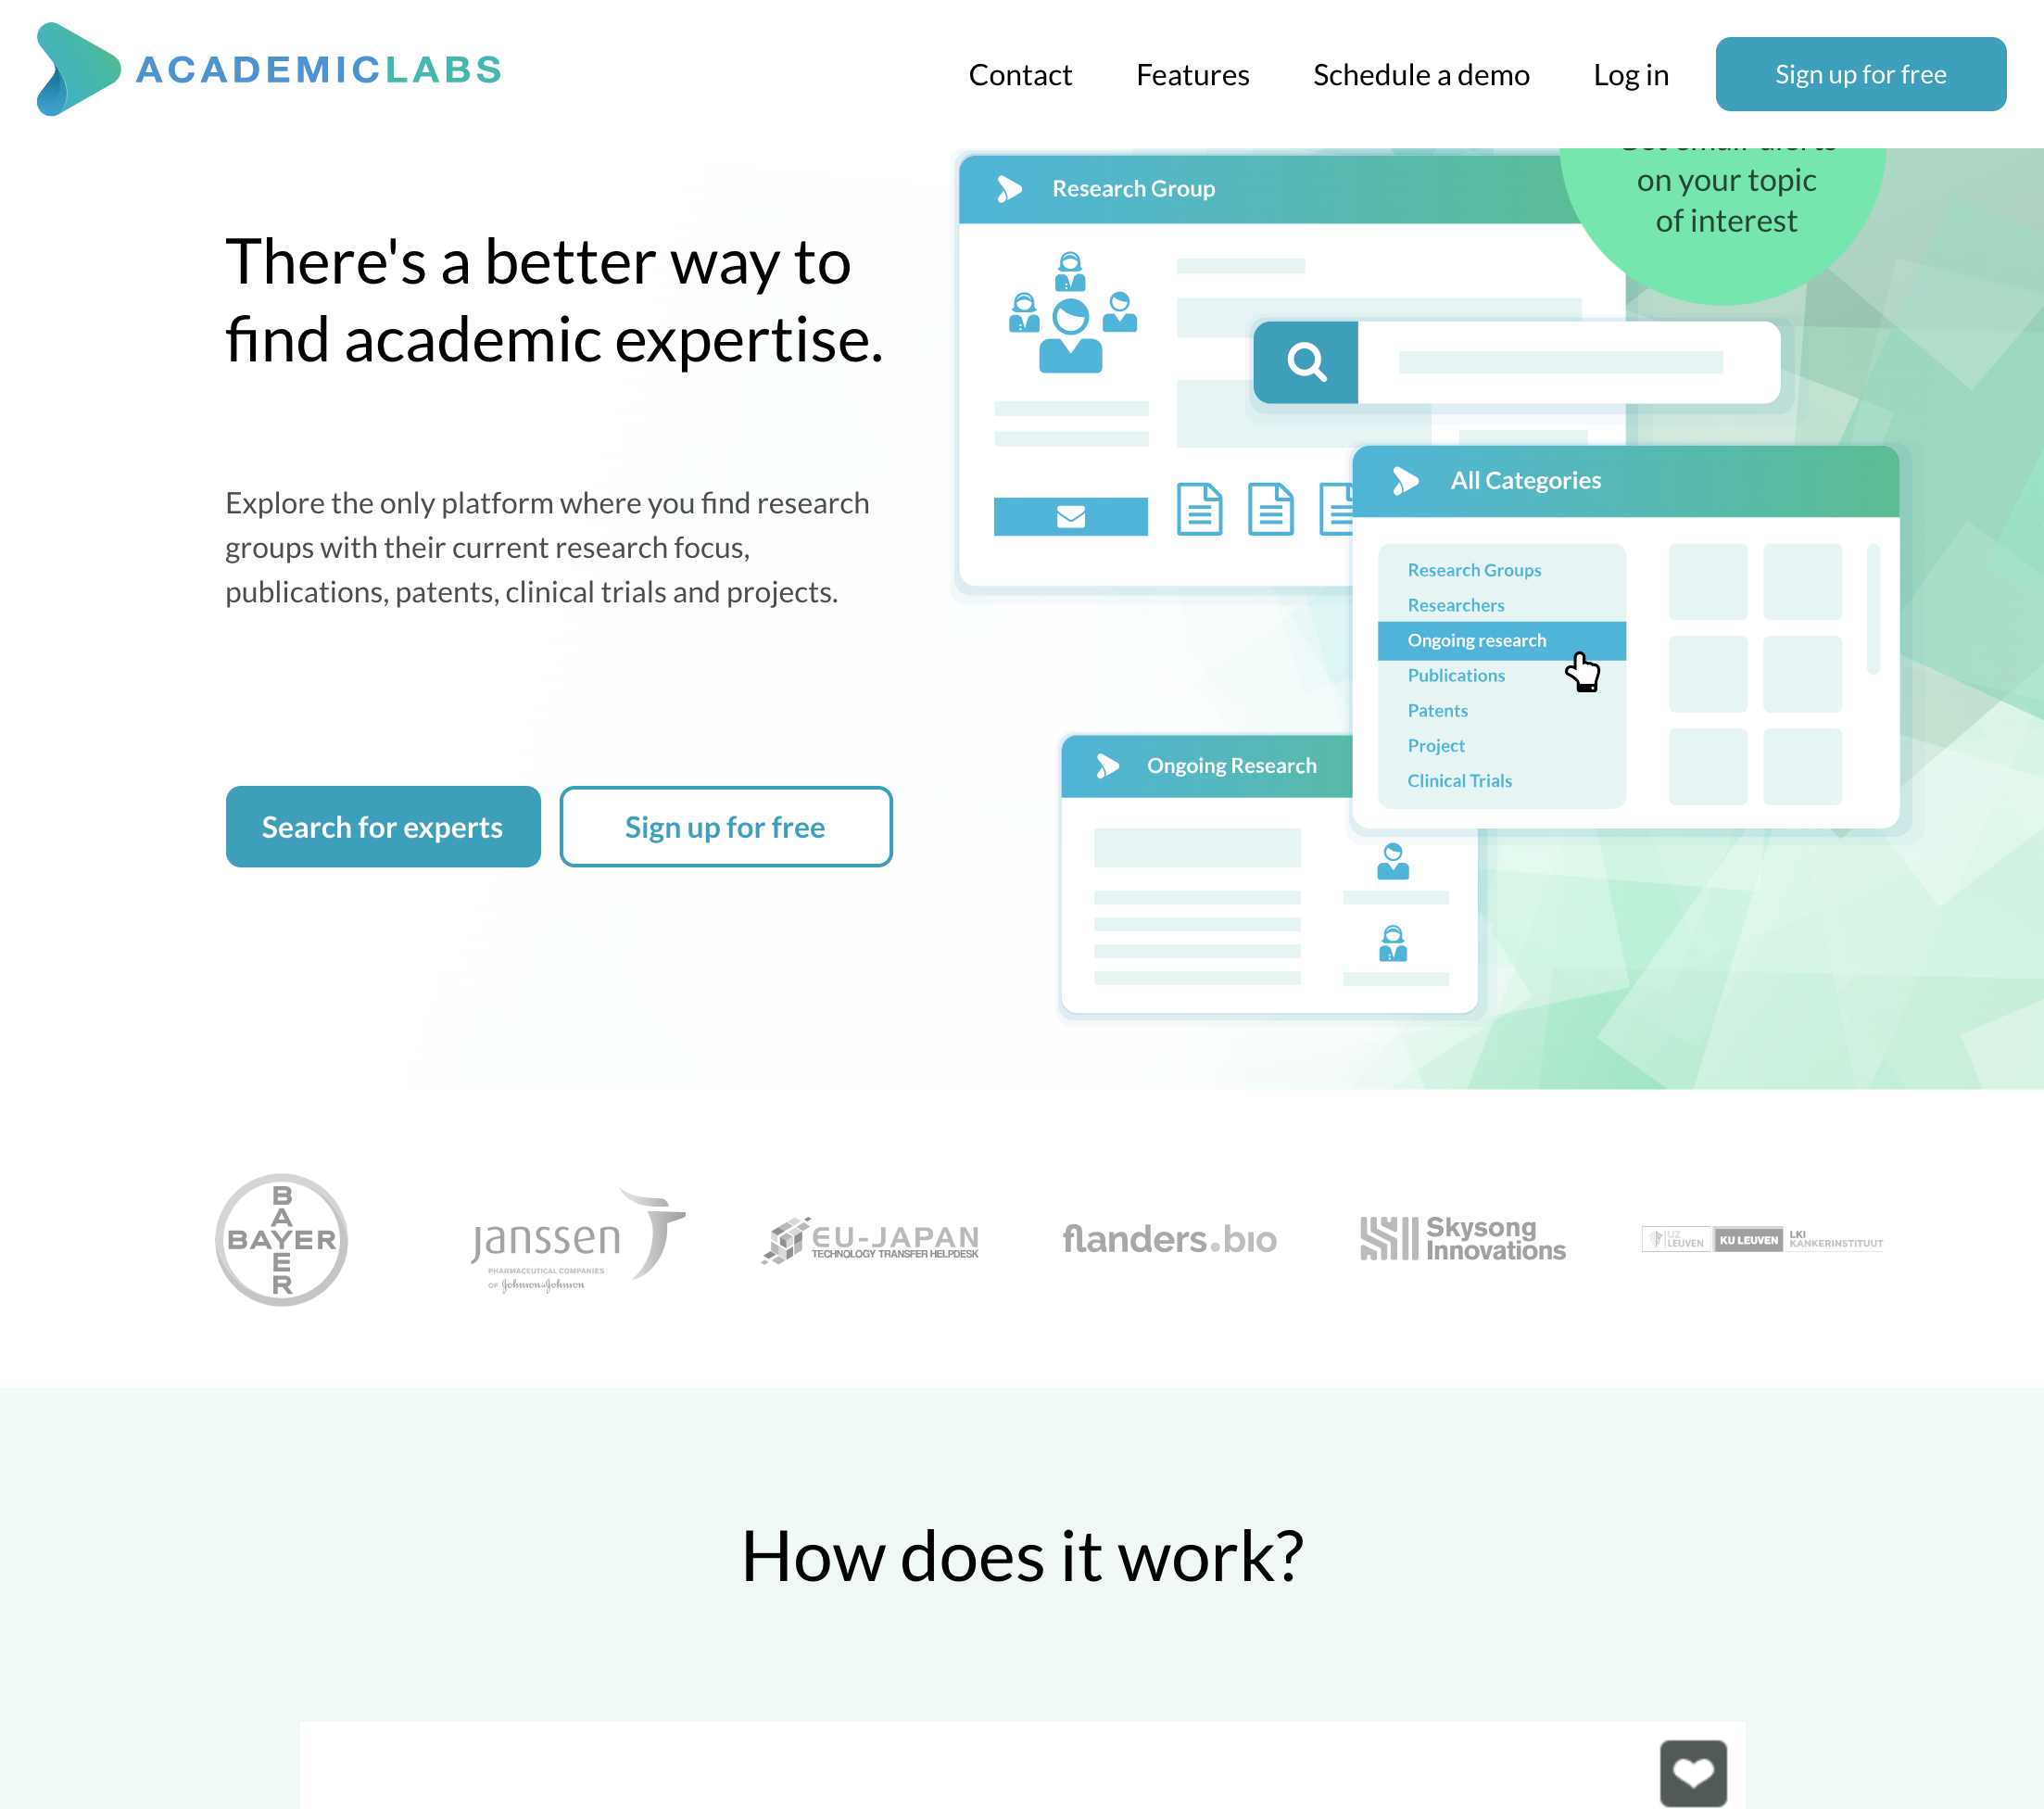 AcademicLabs